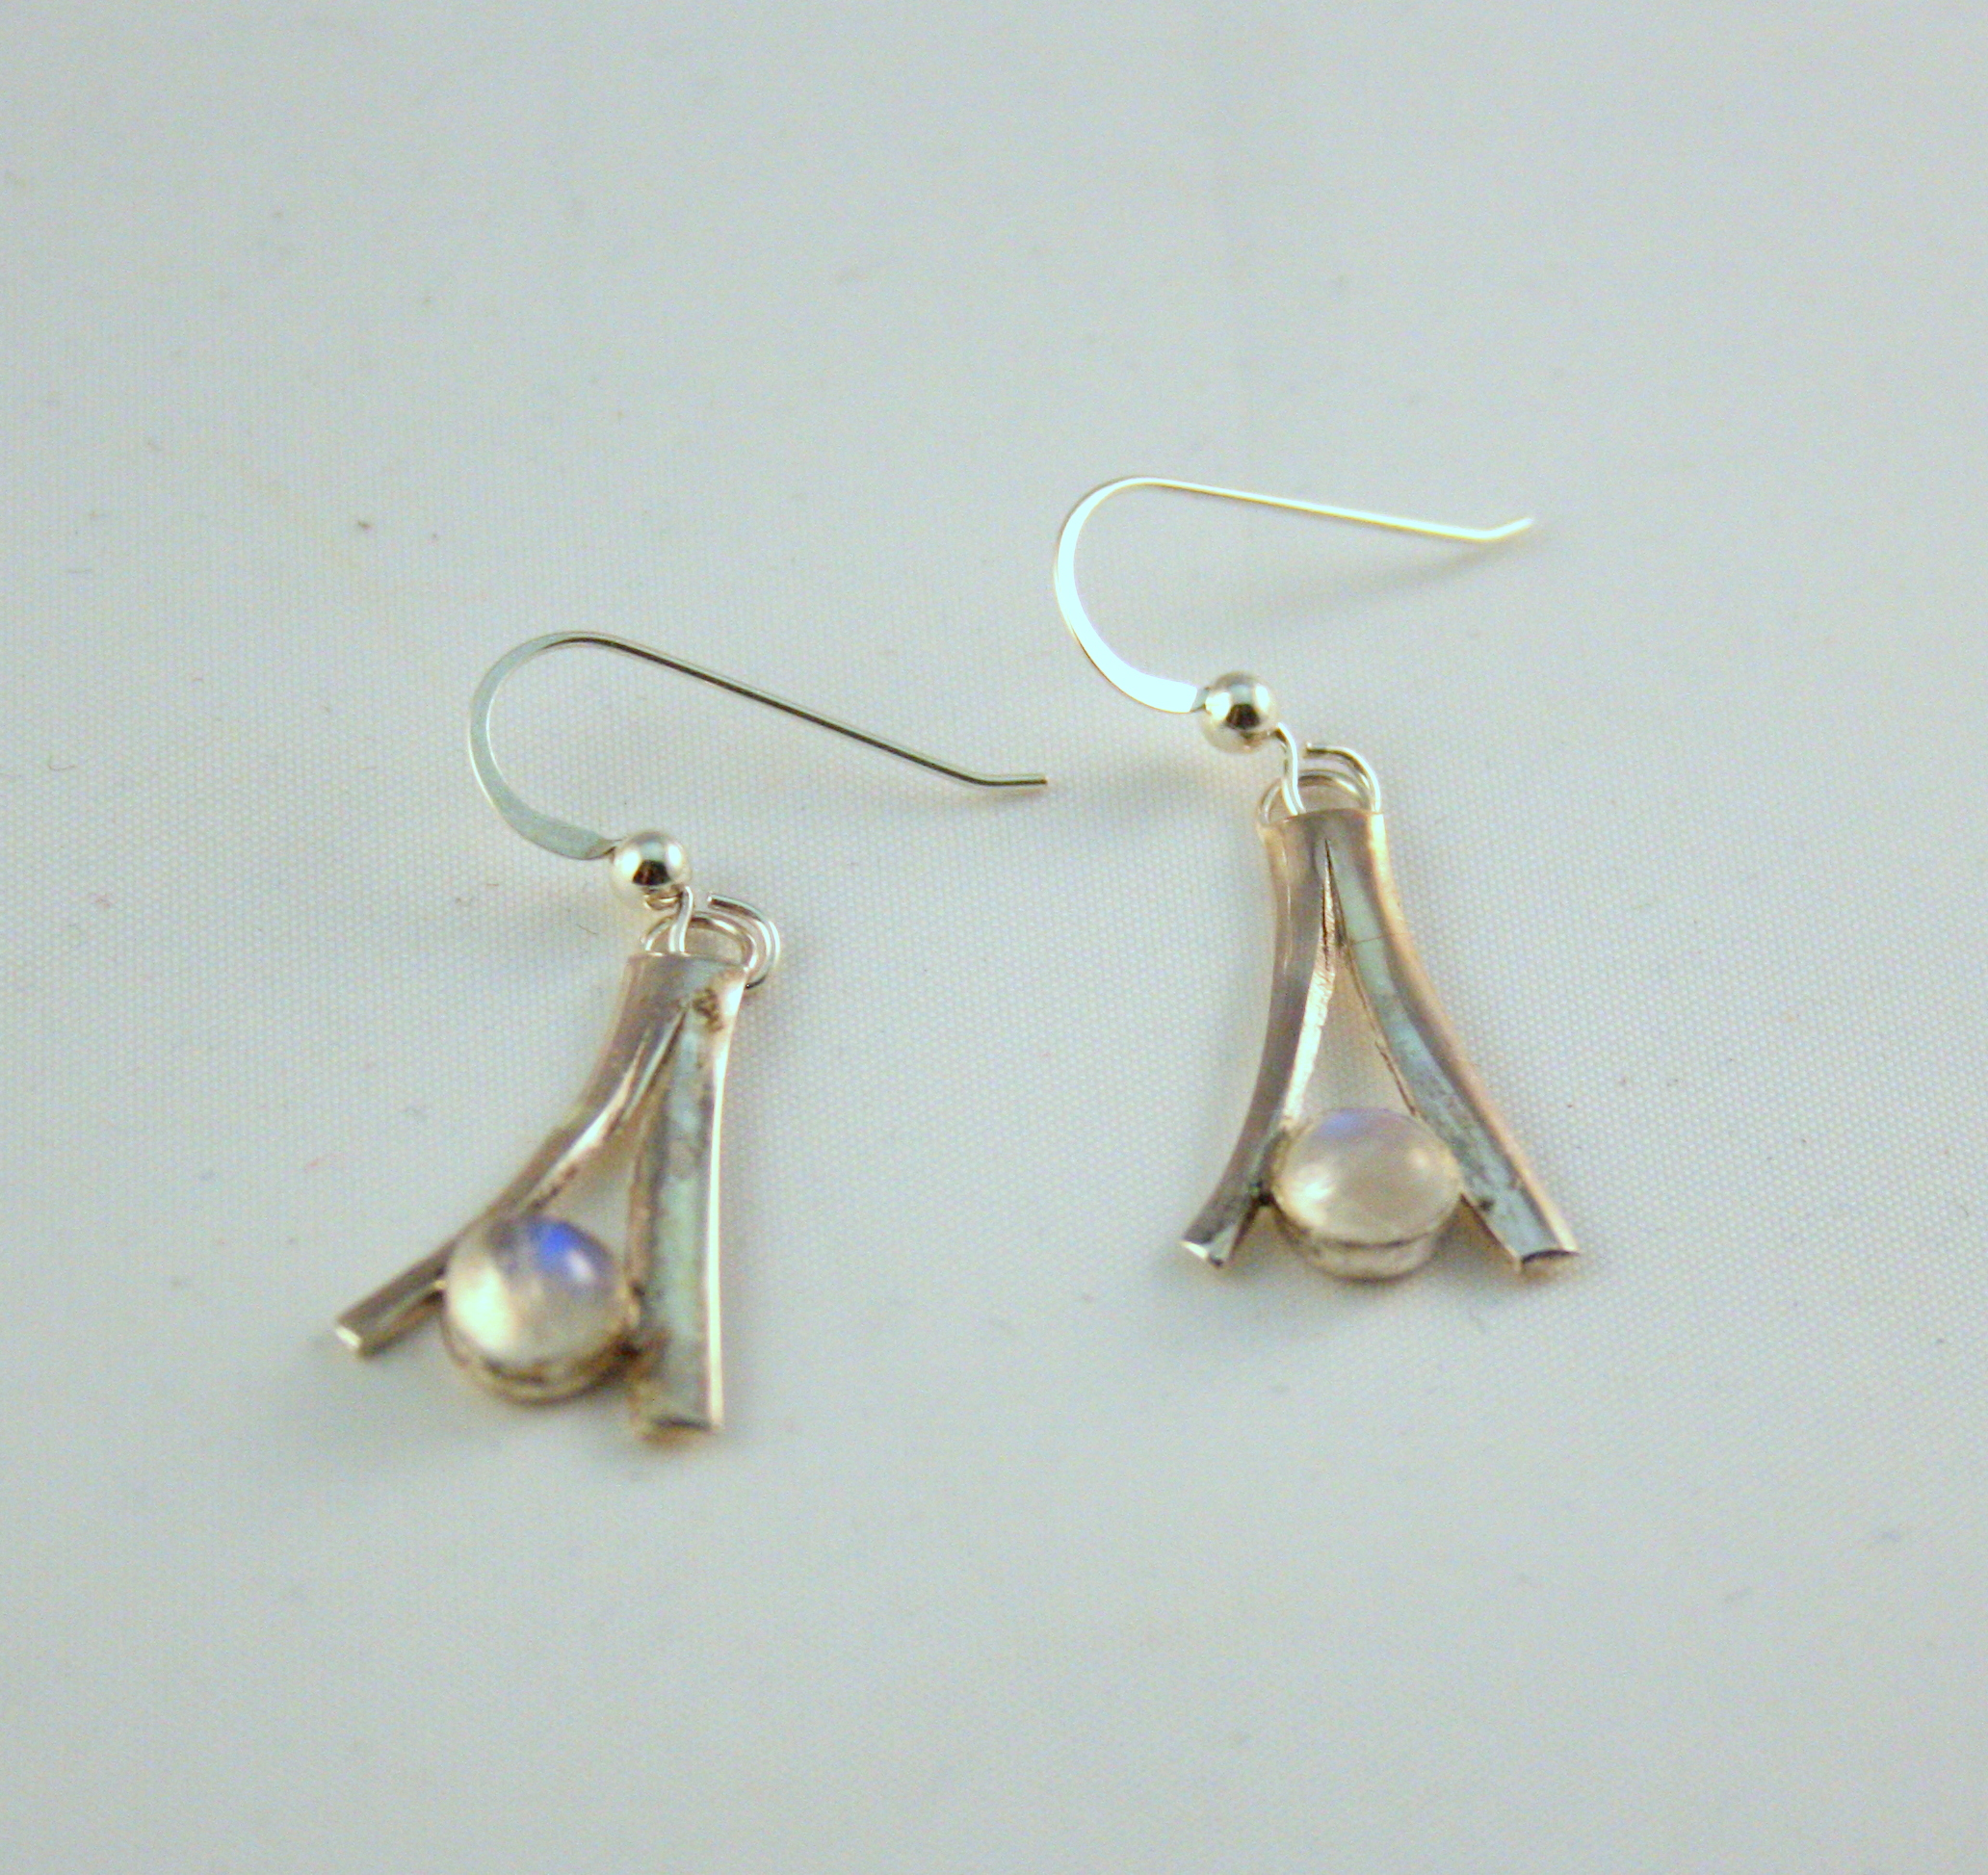 Silver & Moonstone Earrings